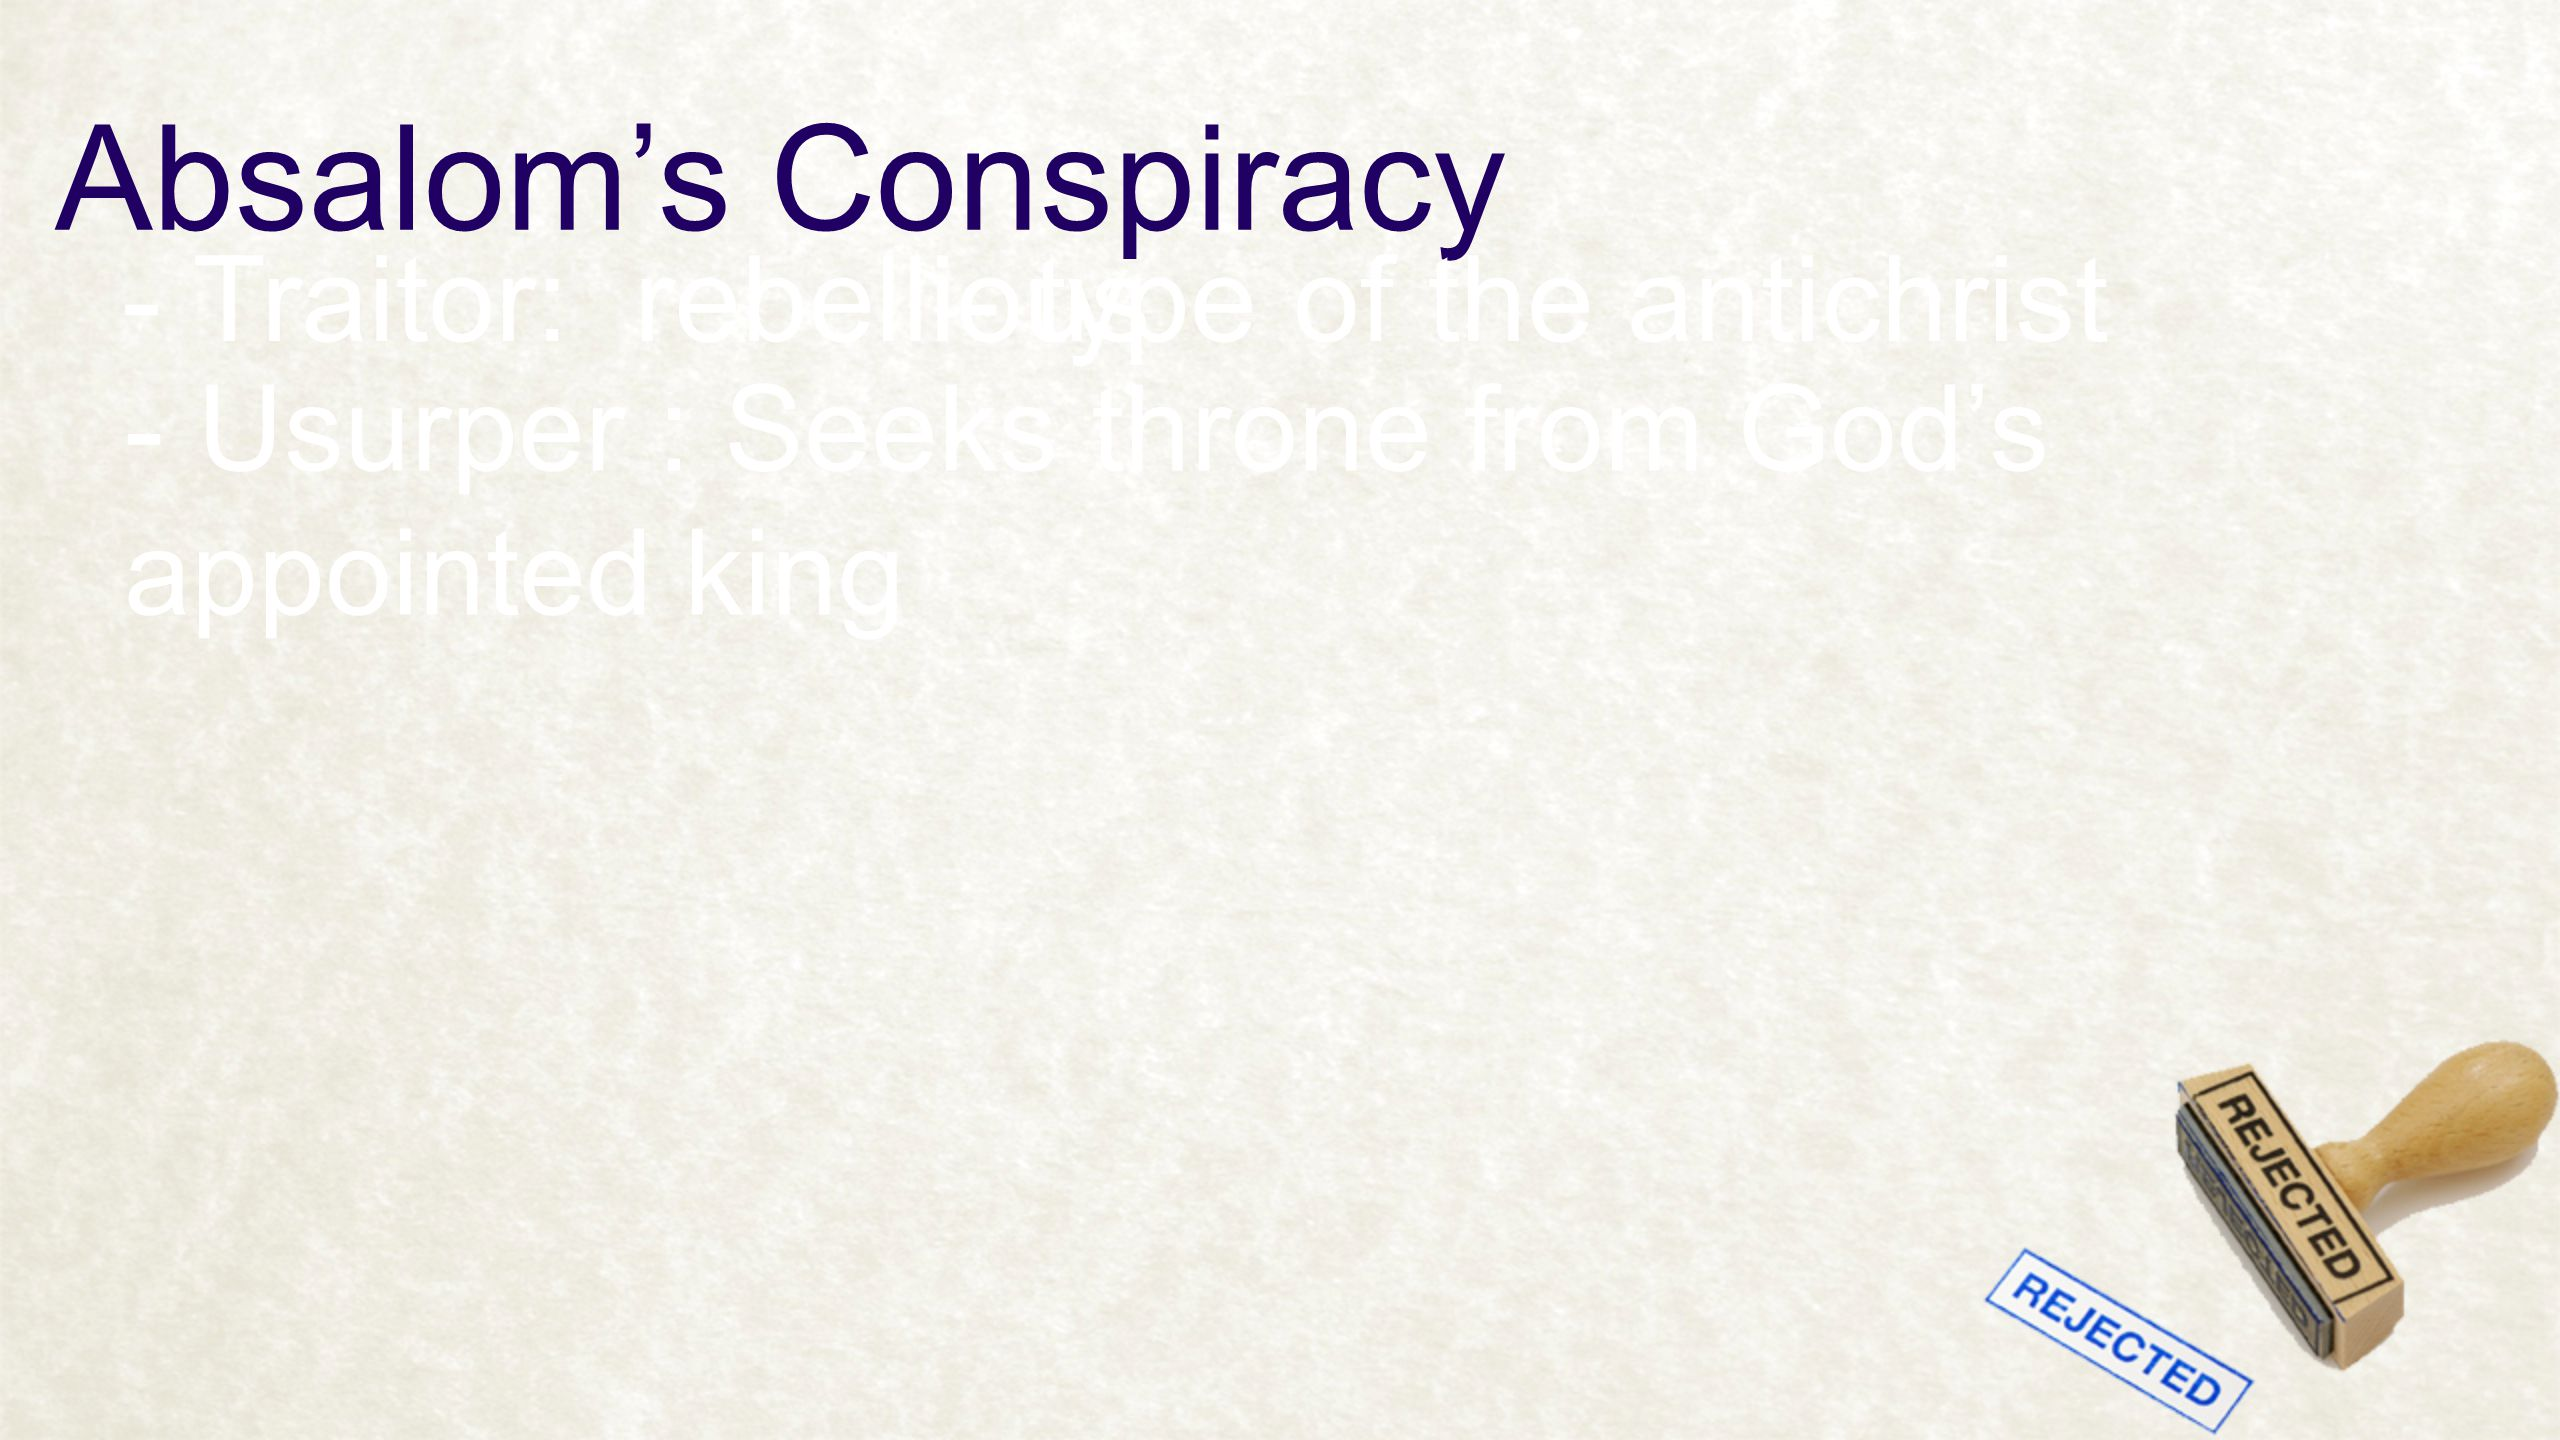 Absalom's Conspiracy - Traitor: rebellious- type of the antichrist - Usurper : Seeks throne from God's appointed king